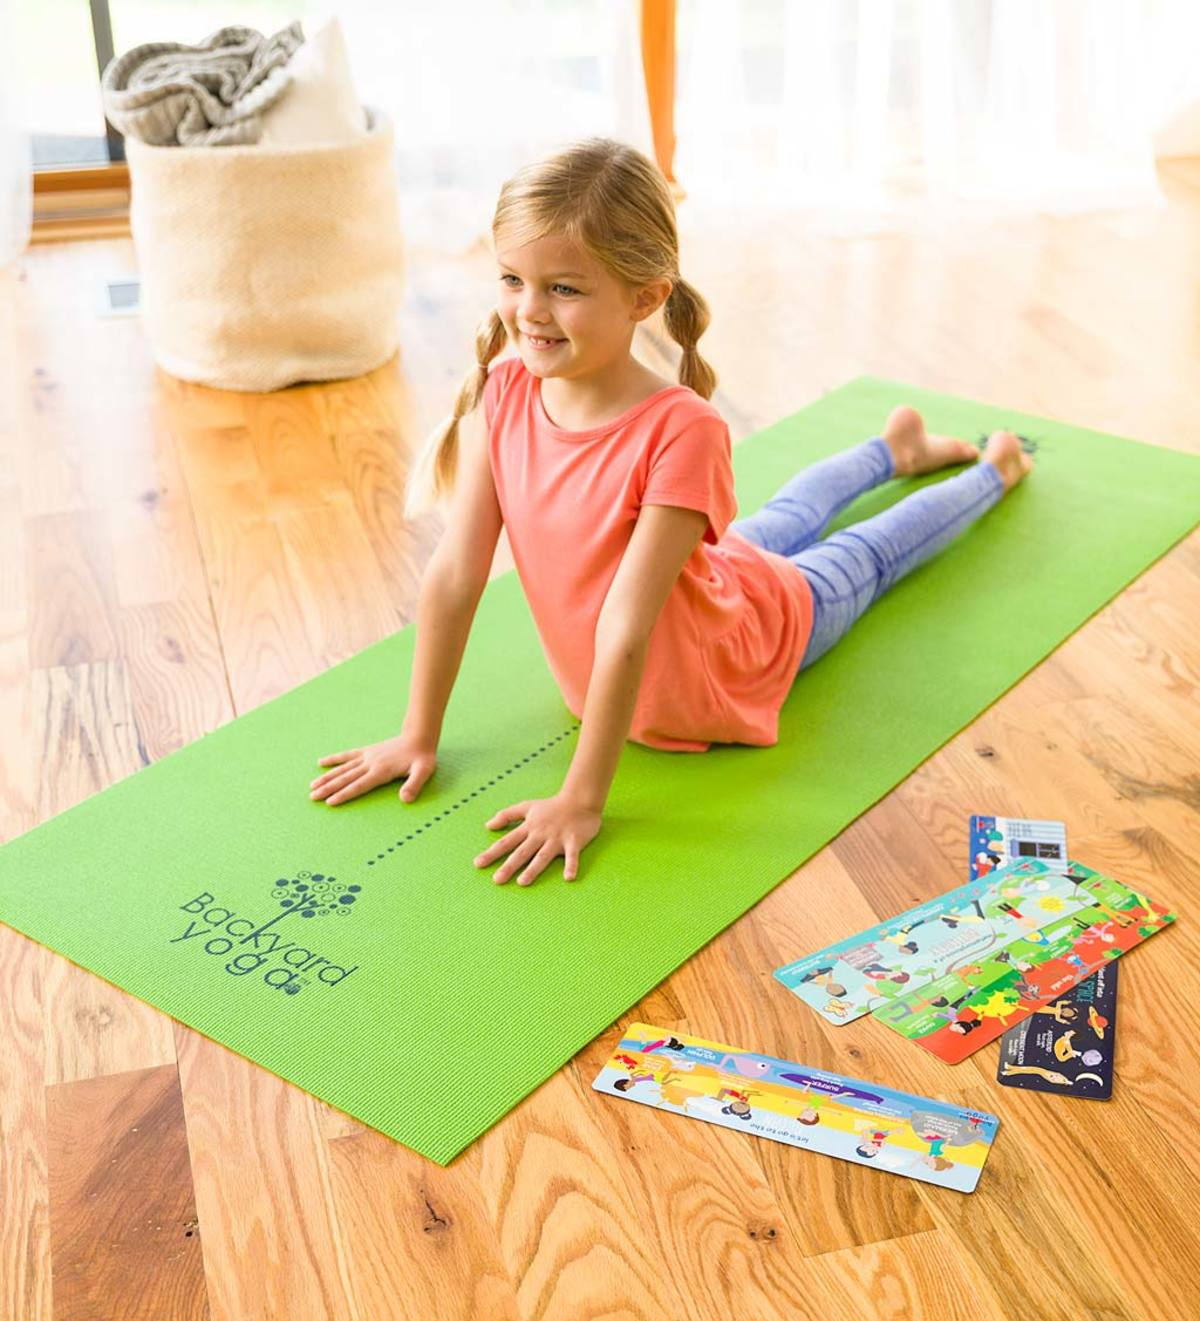 Backyard Yoga® Mat Set with Instruction Cards and the Nutty and Wiggles Yoga Card Game